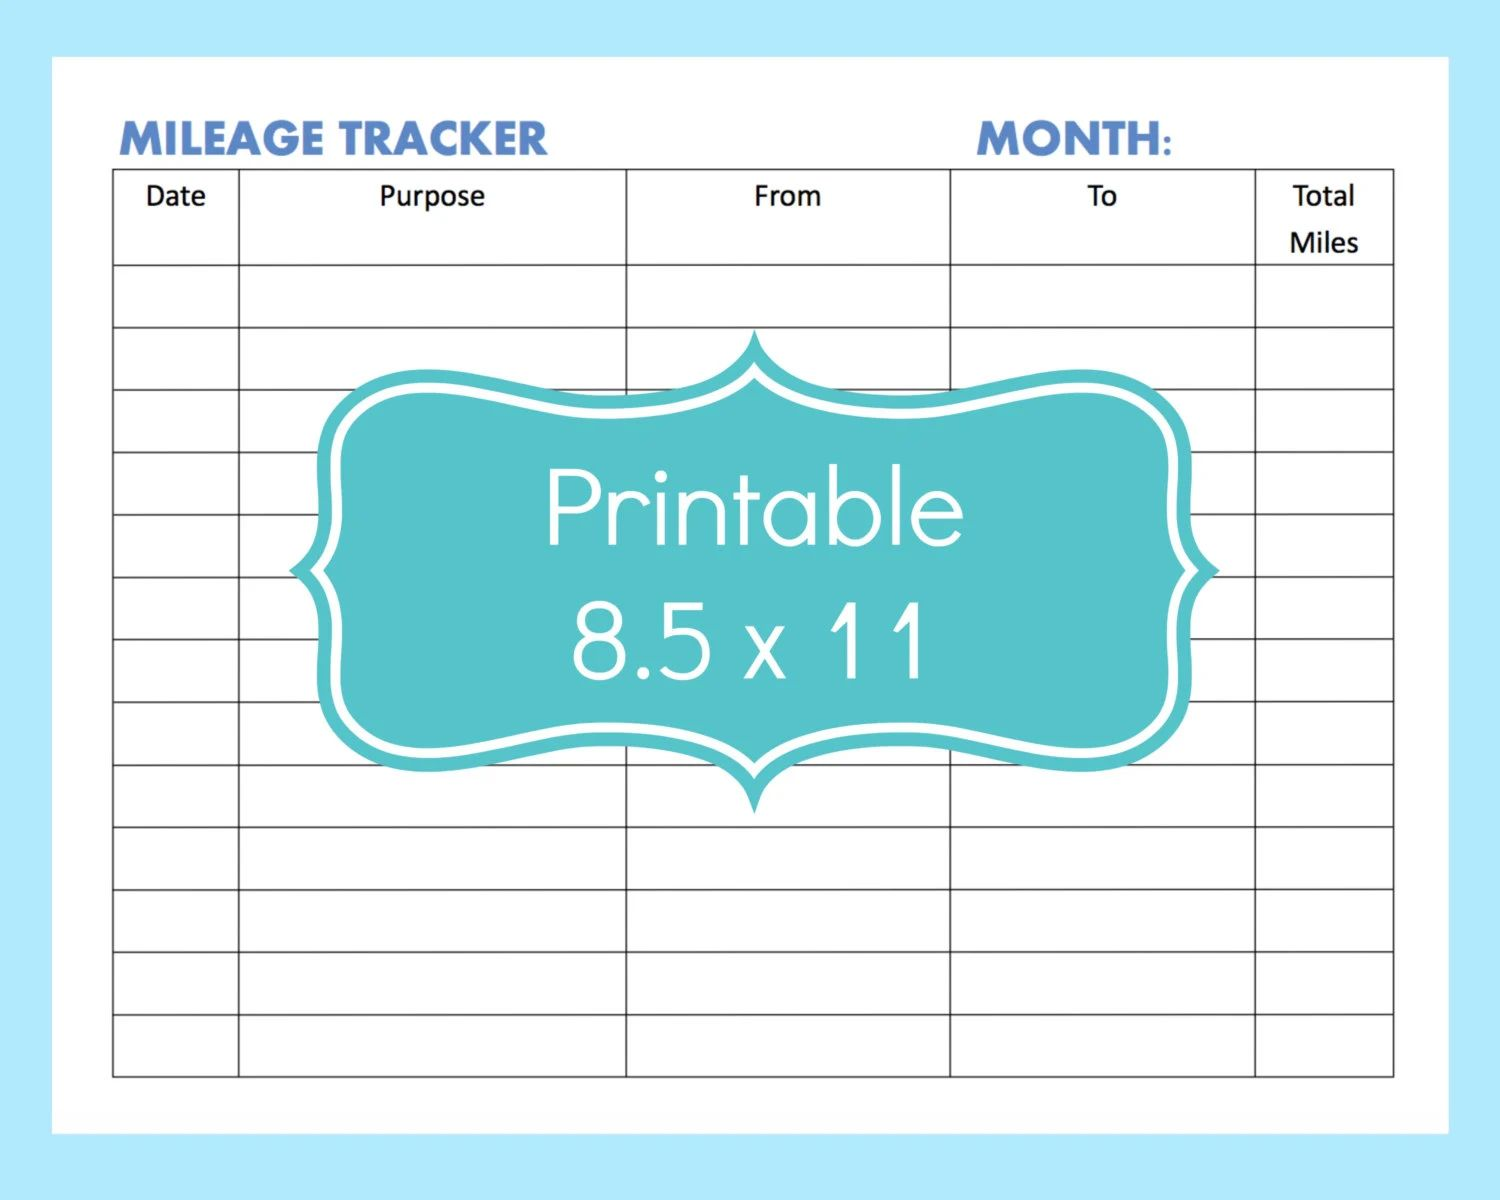 fuel mileage tracker